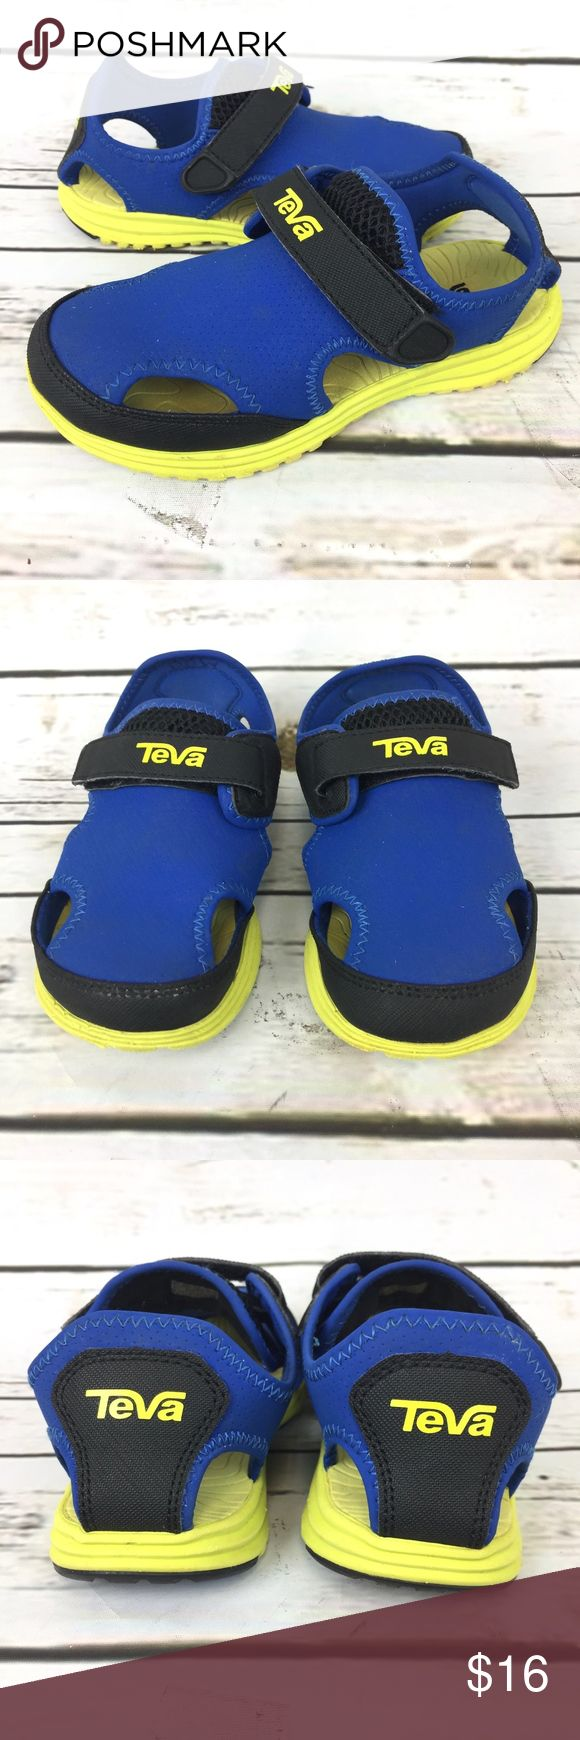 Teva Sandals Toddler Blue Closed Toe Sport Shoes Teva Sandals Size 13 Boys Toddler Blue Closed Toe Sport Water. In great condition. View pictures for more details. 3A4 Teva Shoes Sandals & Flip Flops